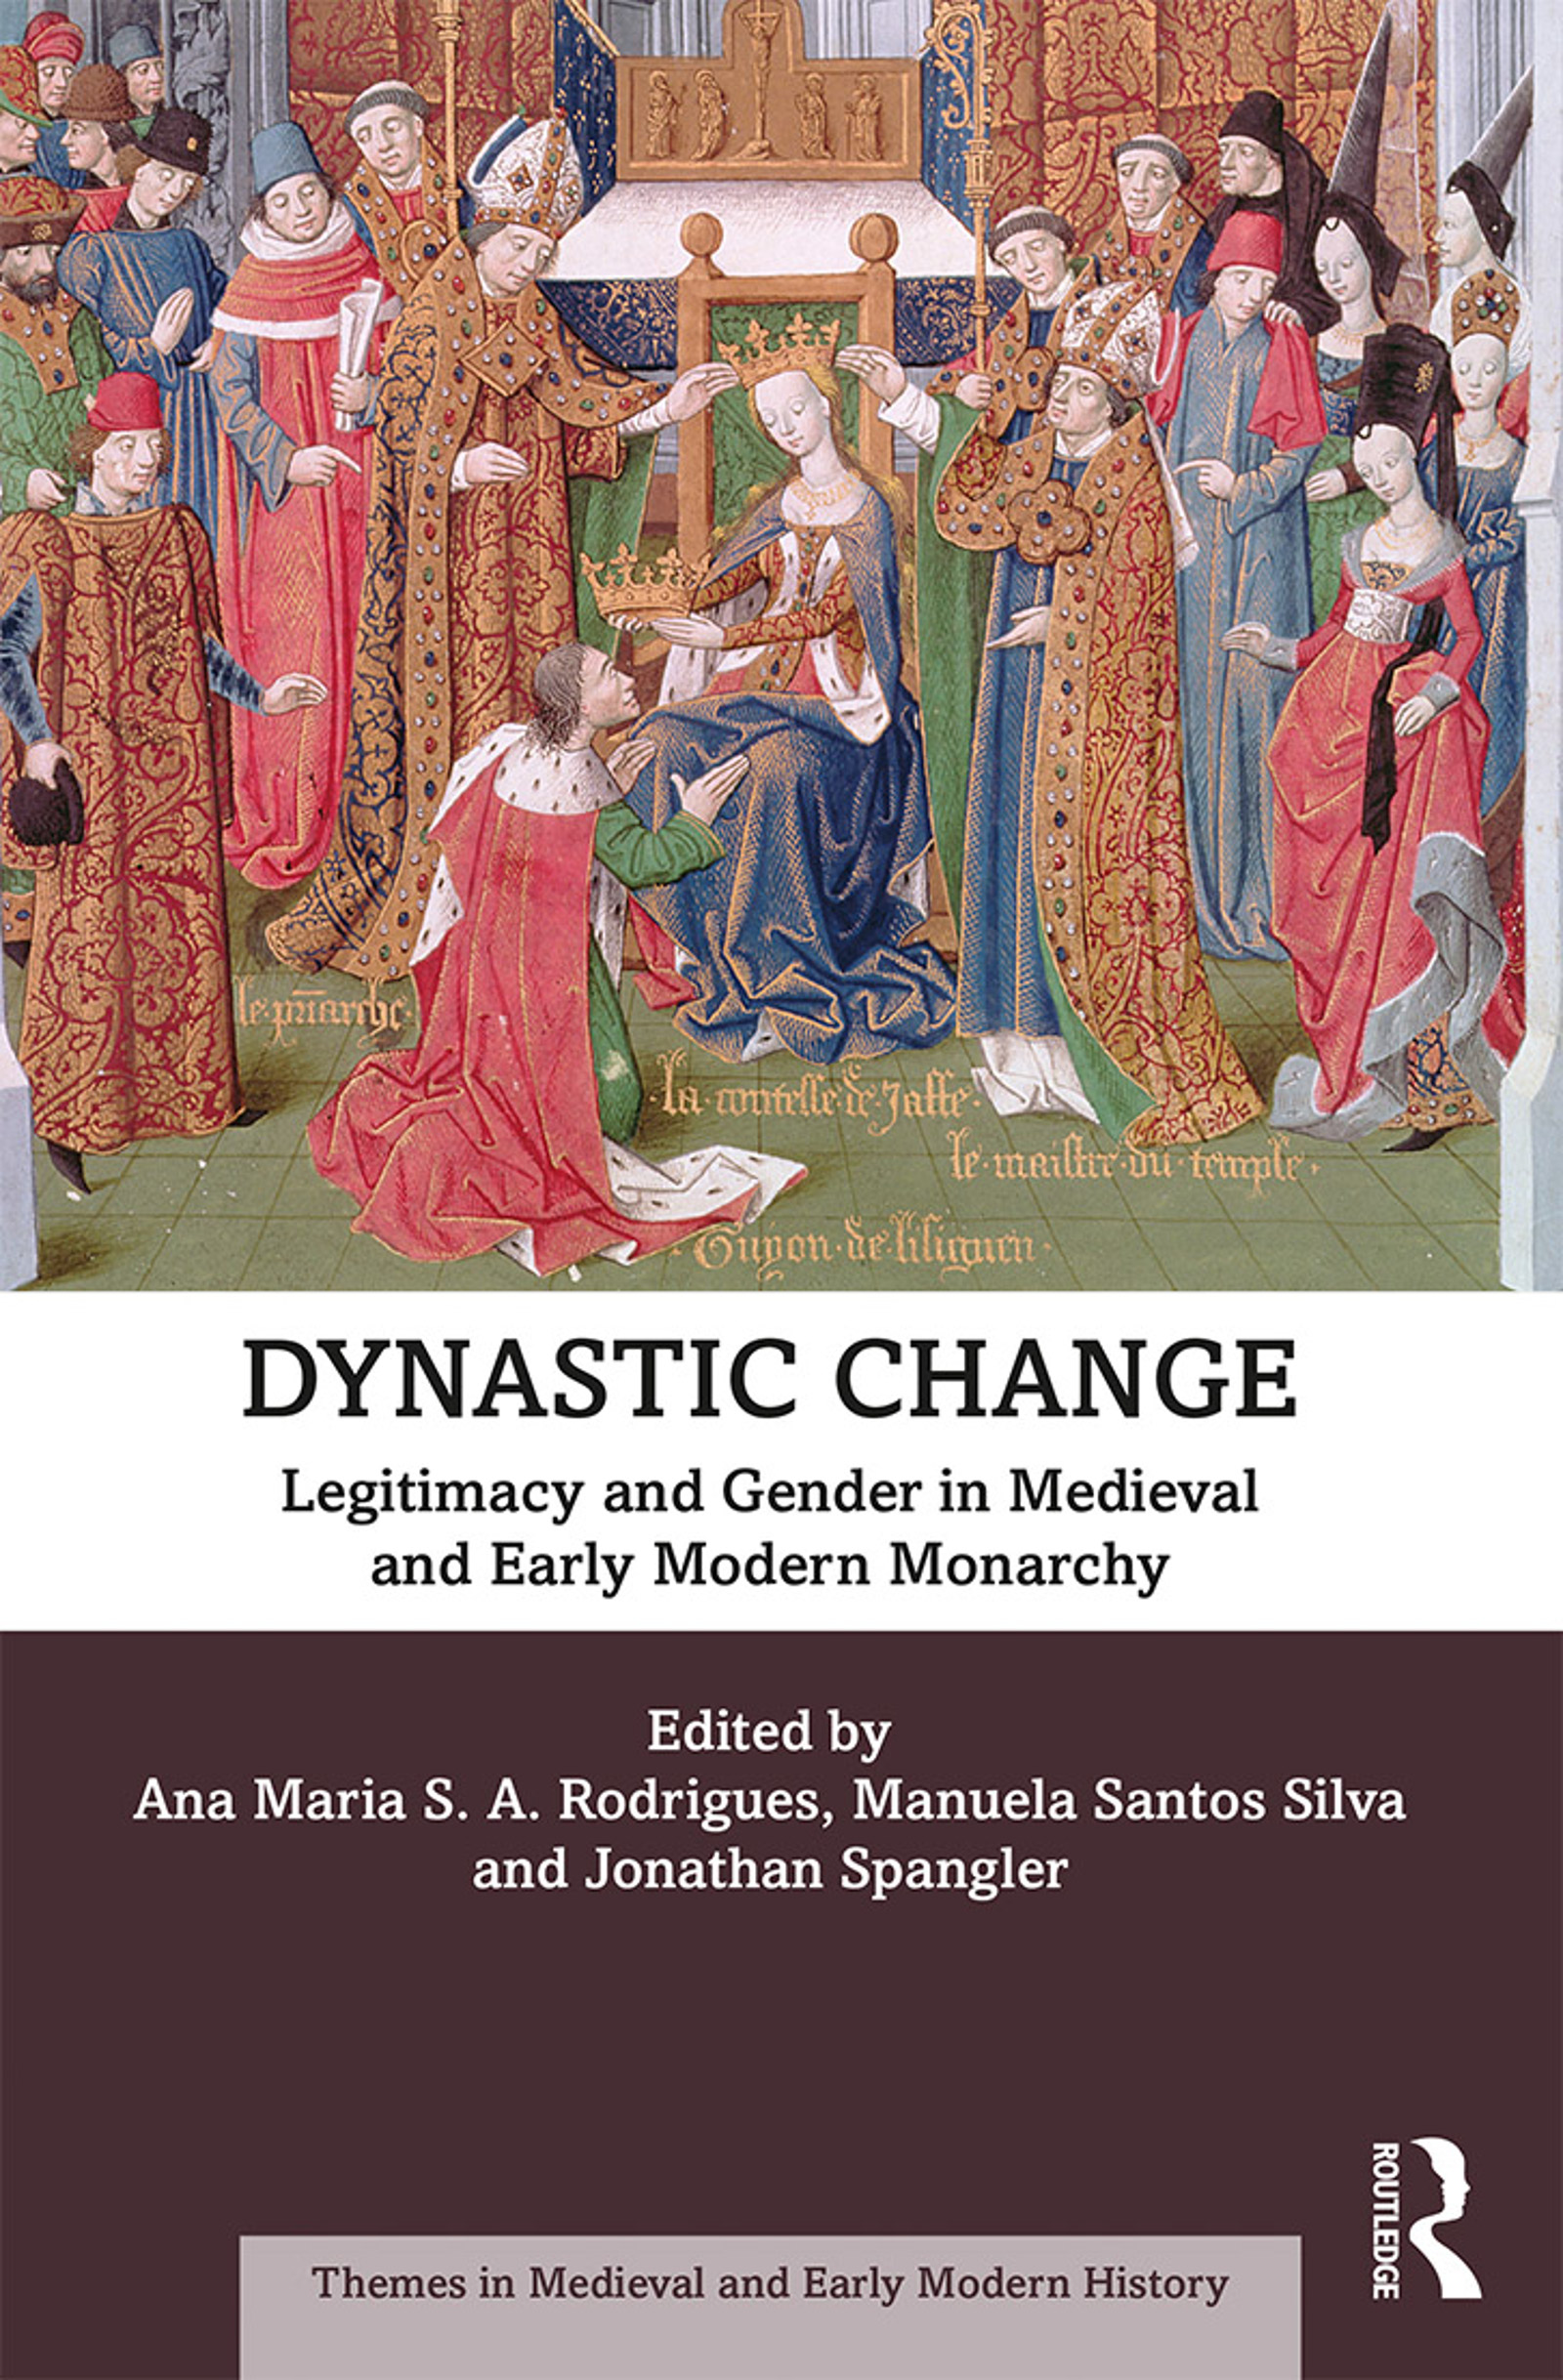 Dynastic Change: Legitimacy and Gender in Medieval and Early Modern Monarchy book cover